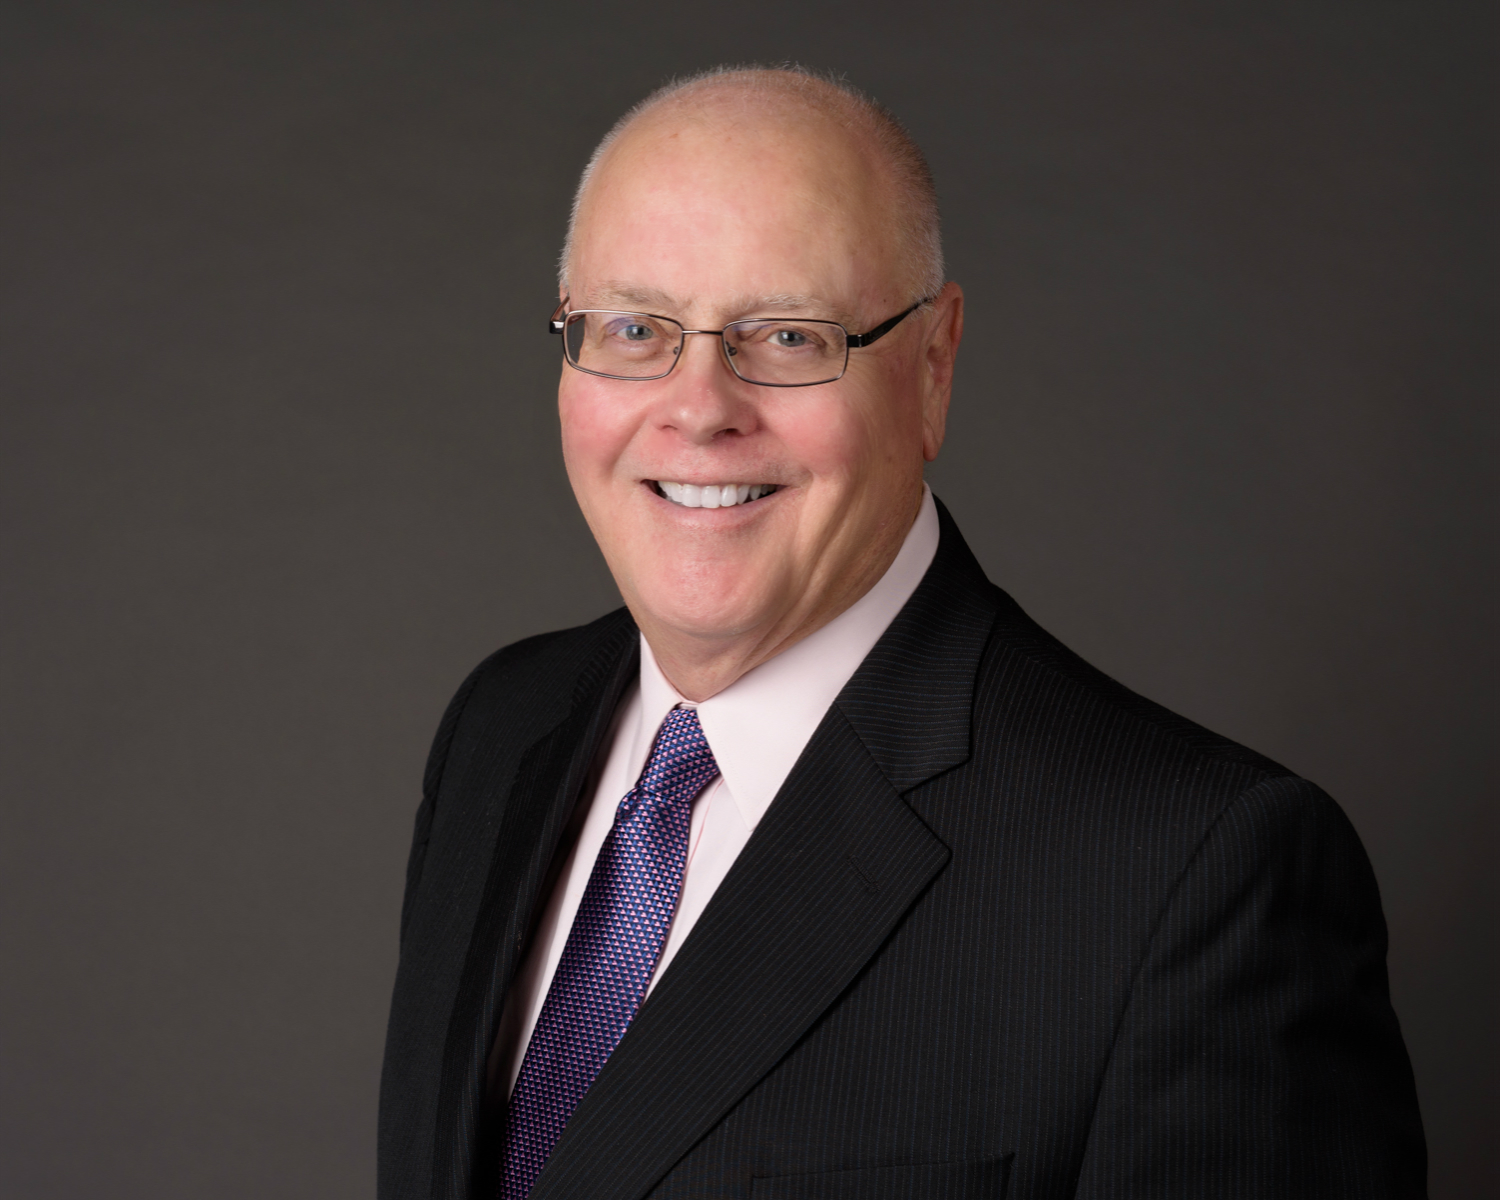 walsh low res 1